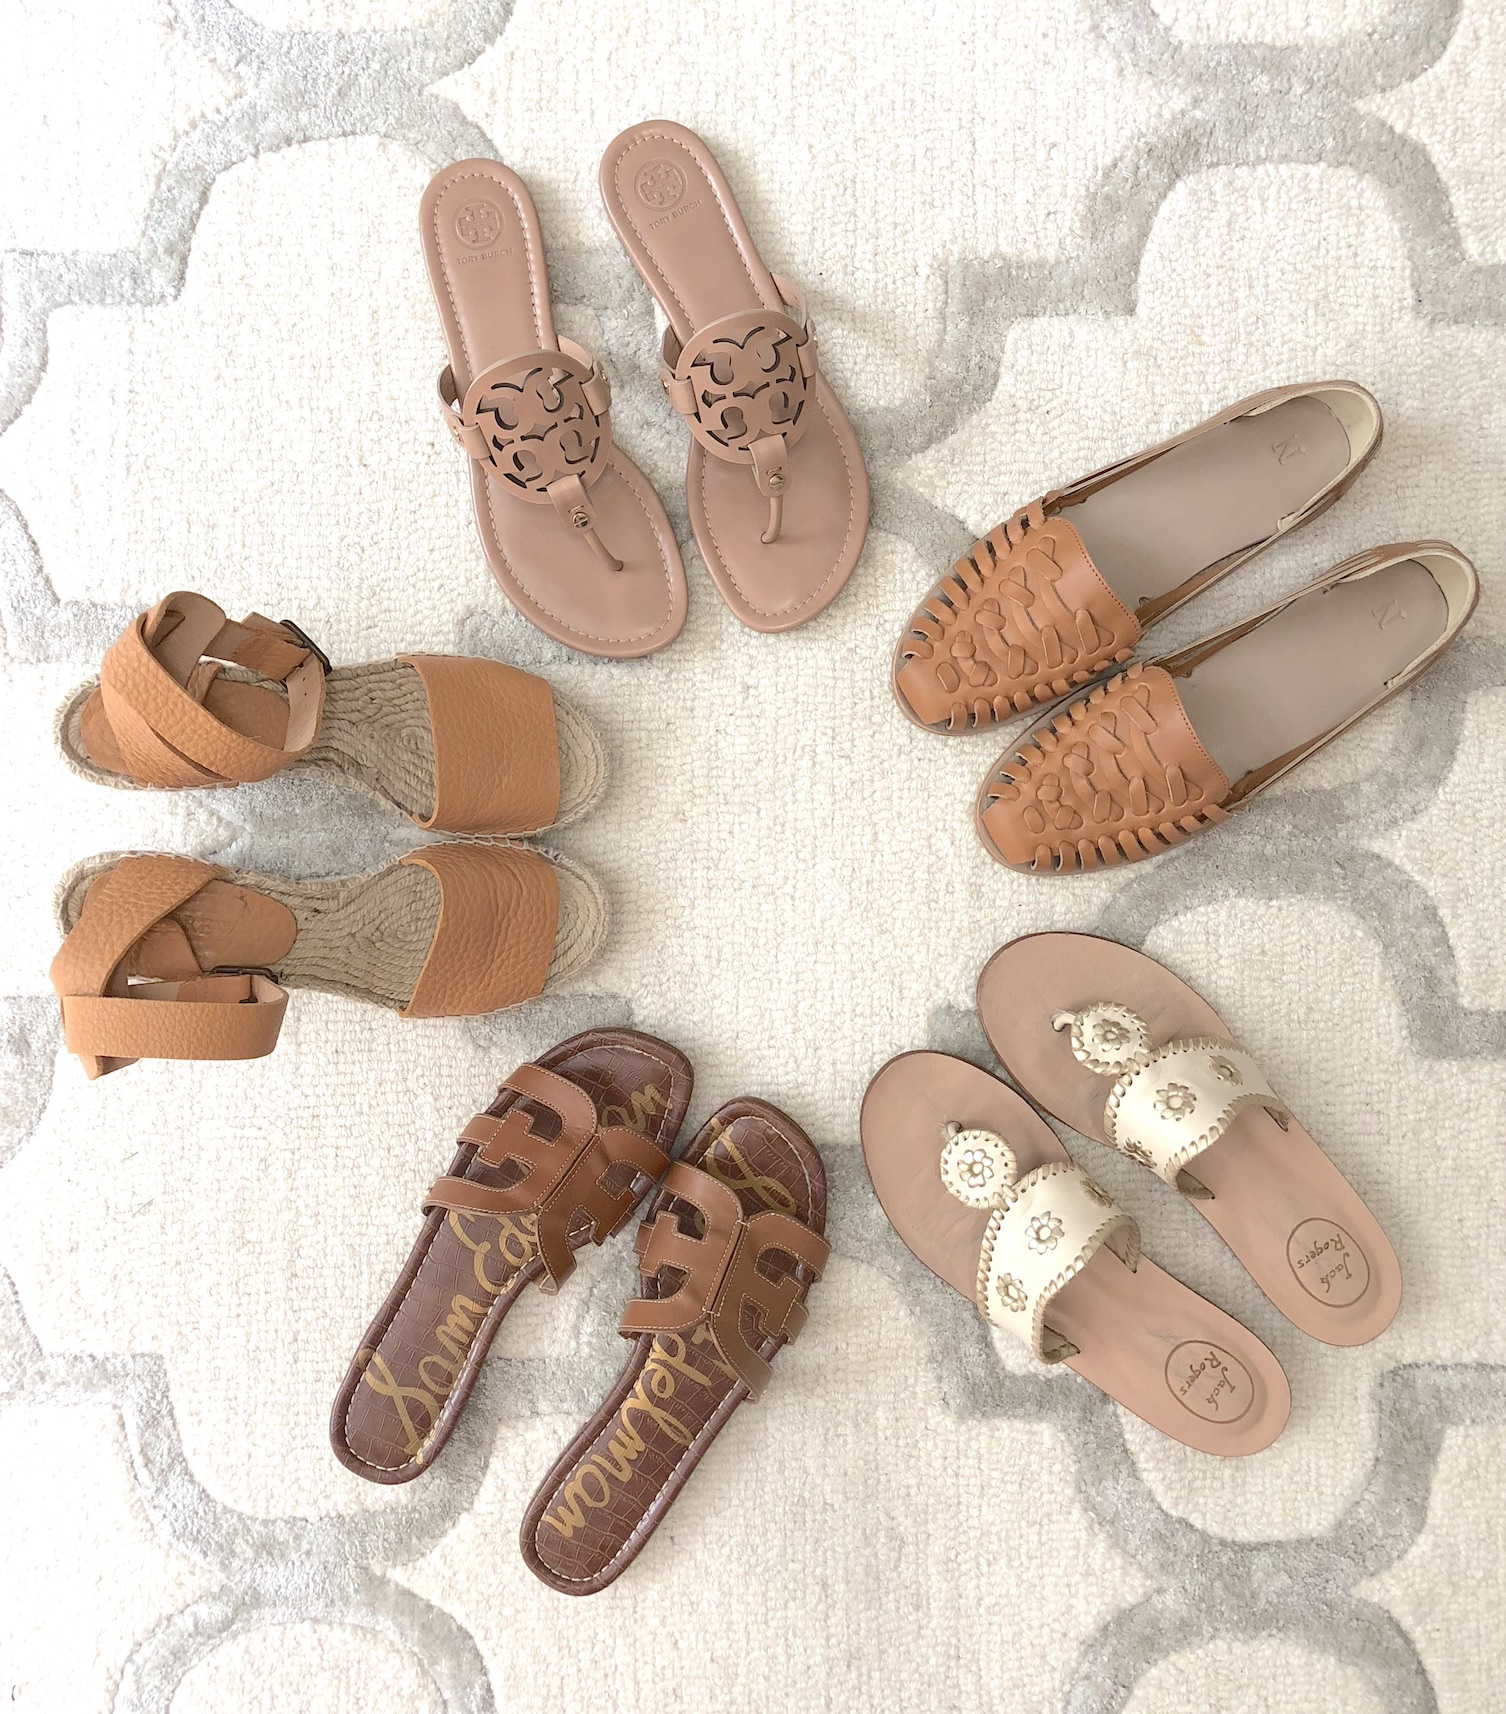 My Favorite Summer Shoes - All 5 Pairs of Sandals